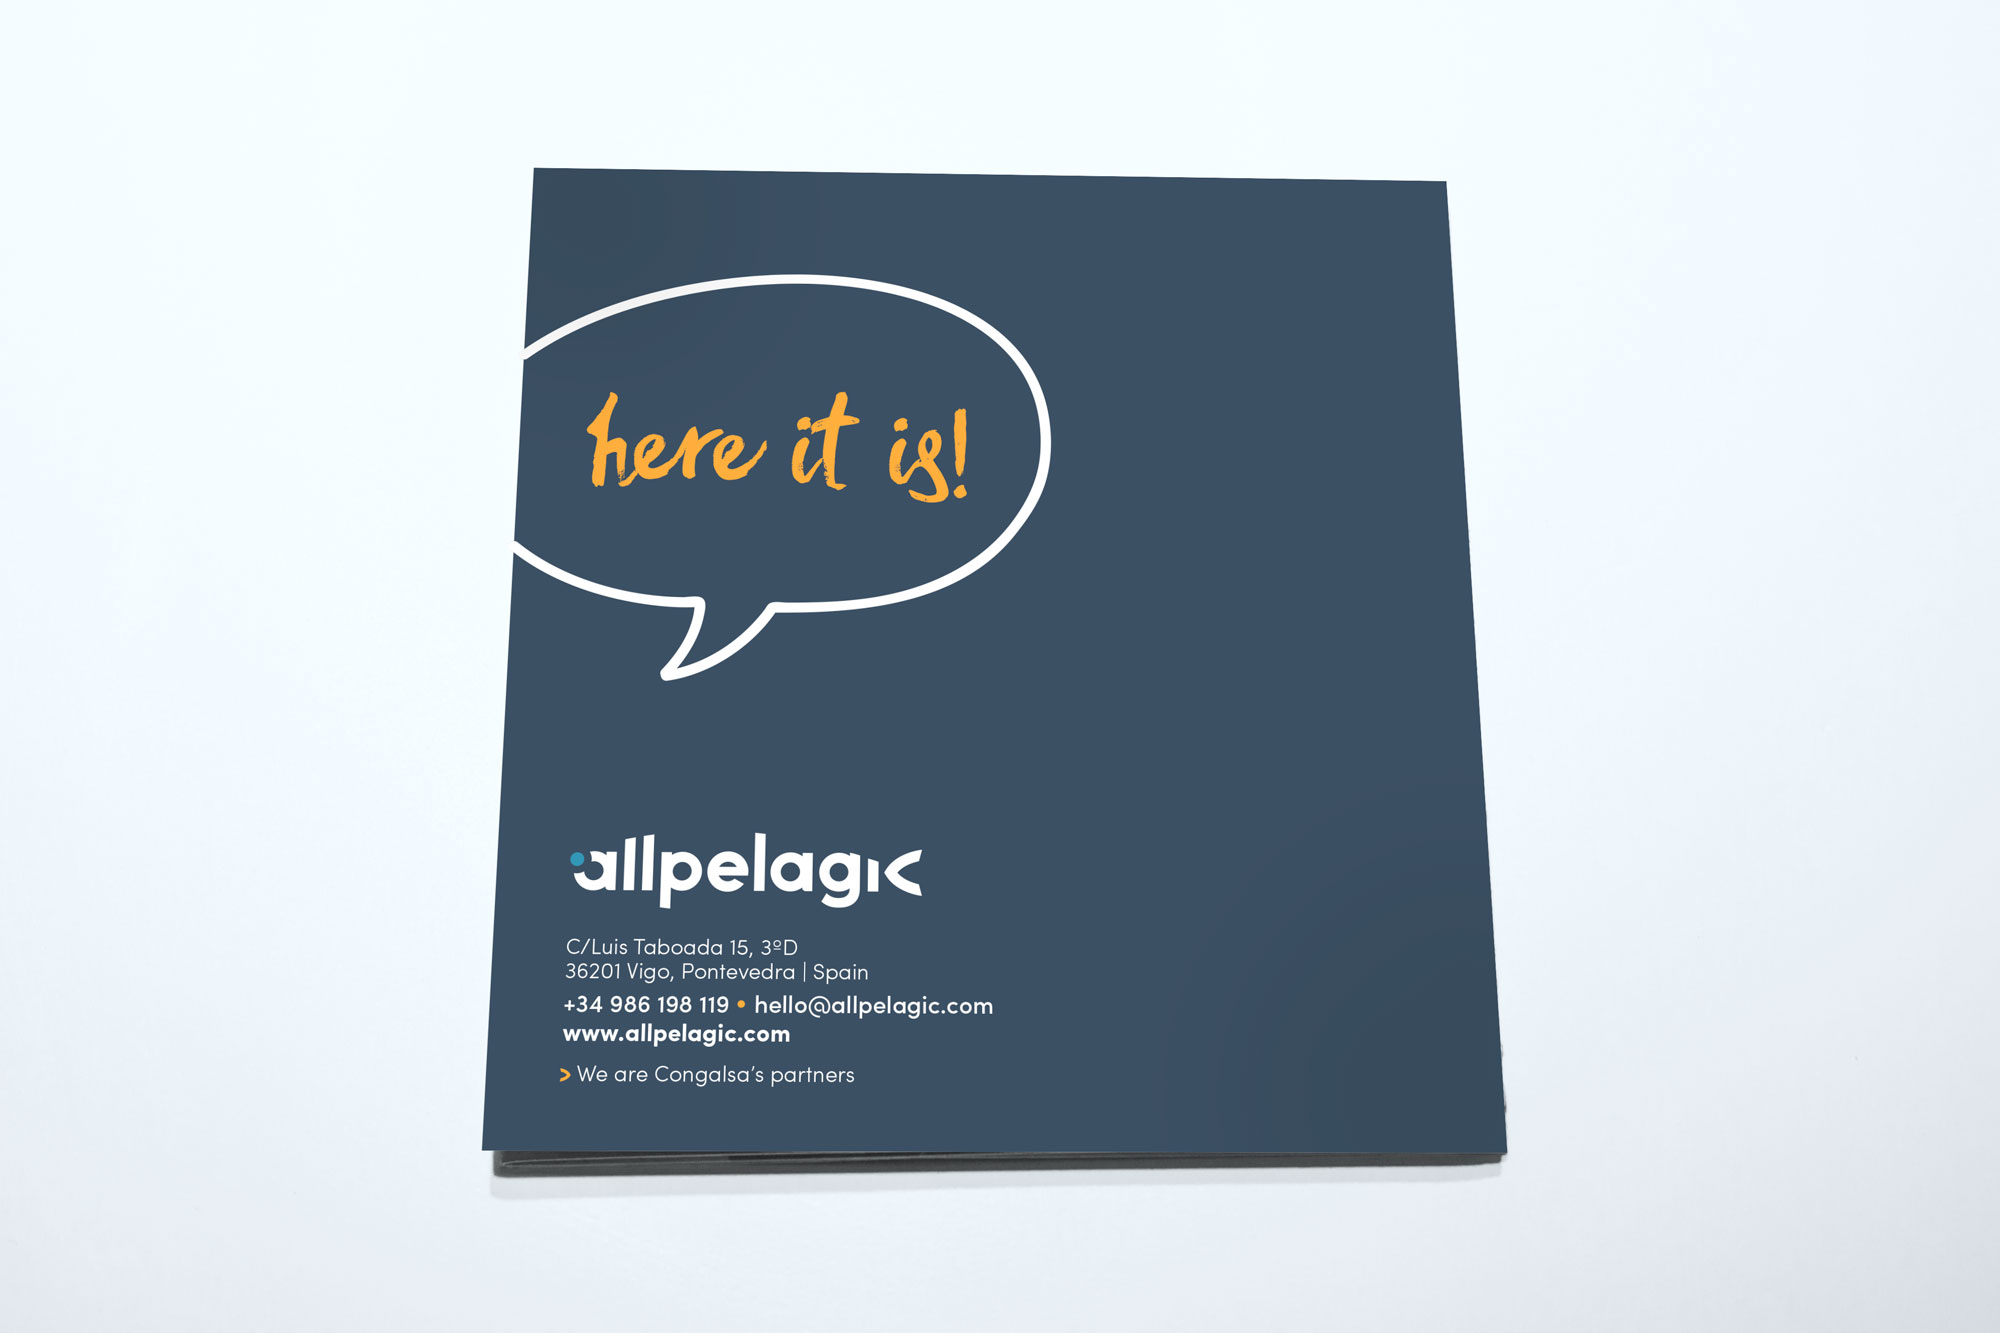 Allpelagic Folleto 4